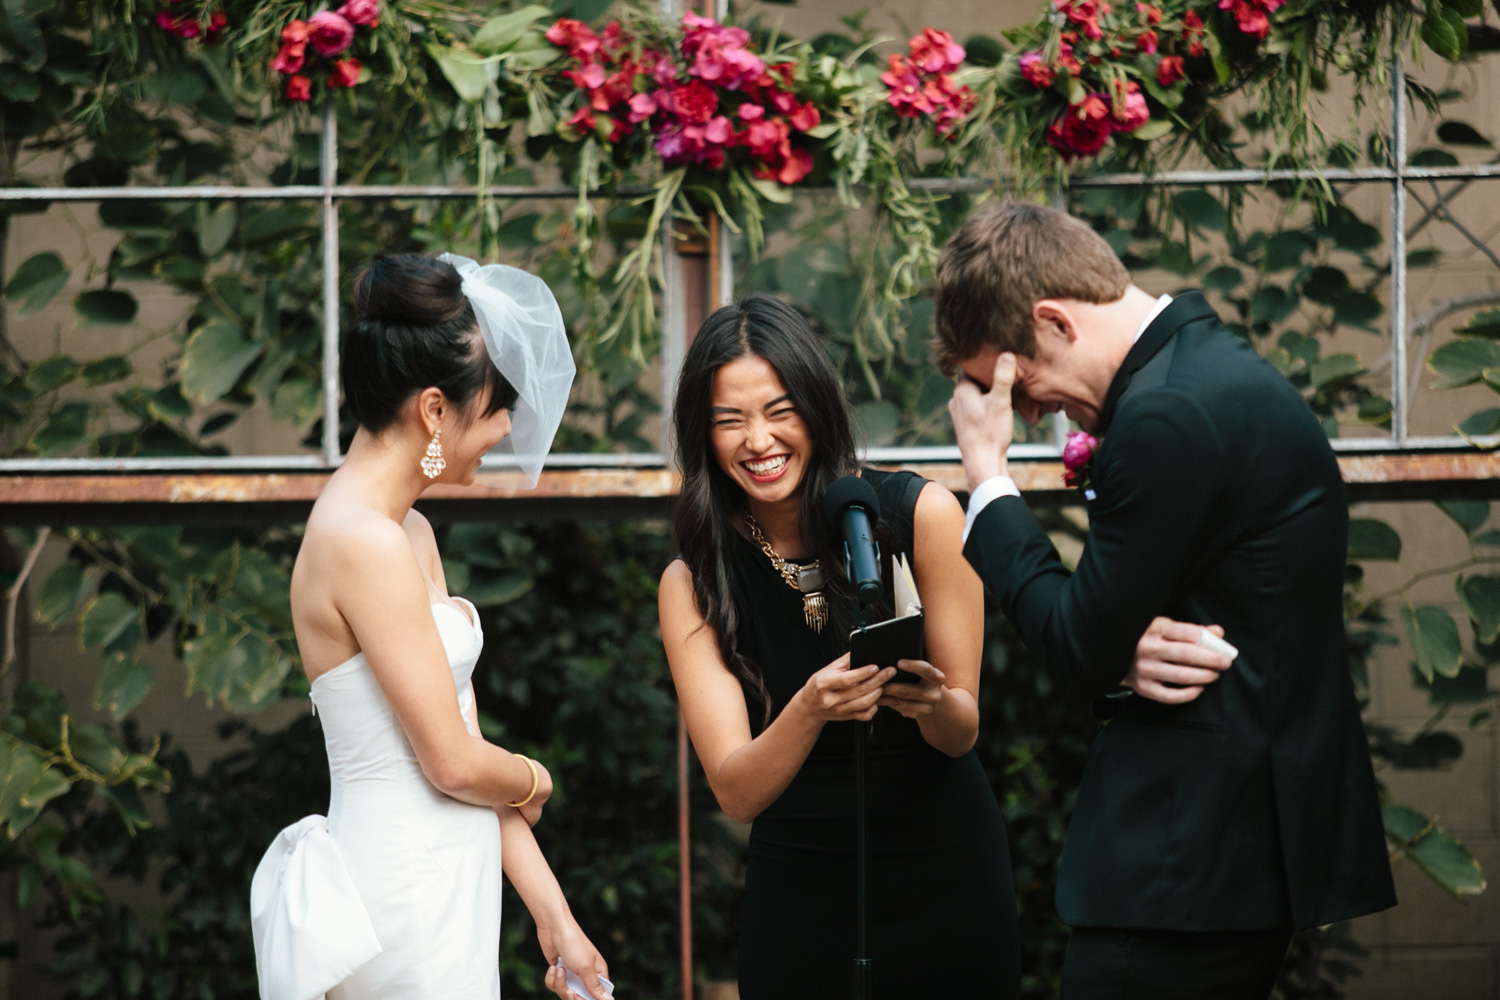 Los Angeles Wedding Photographer, The Elysian  - The Gathering Season x weareleoandkat 050.JPG